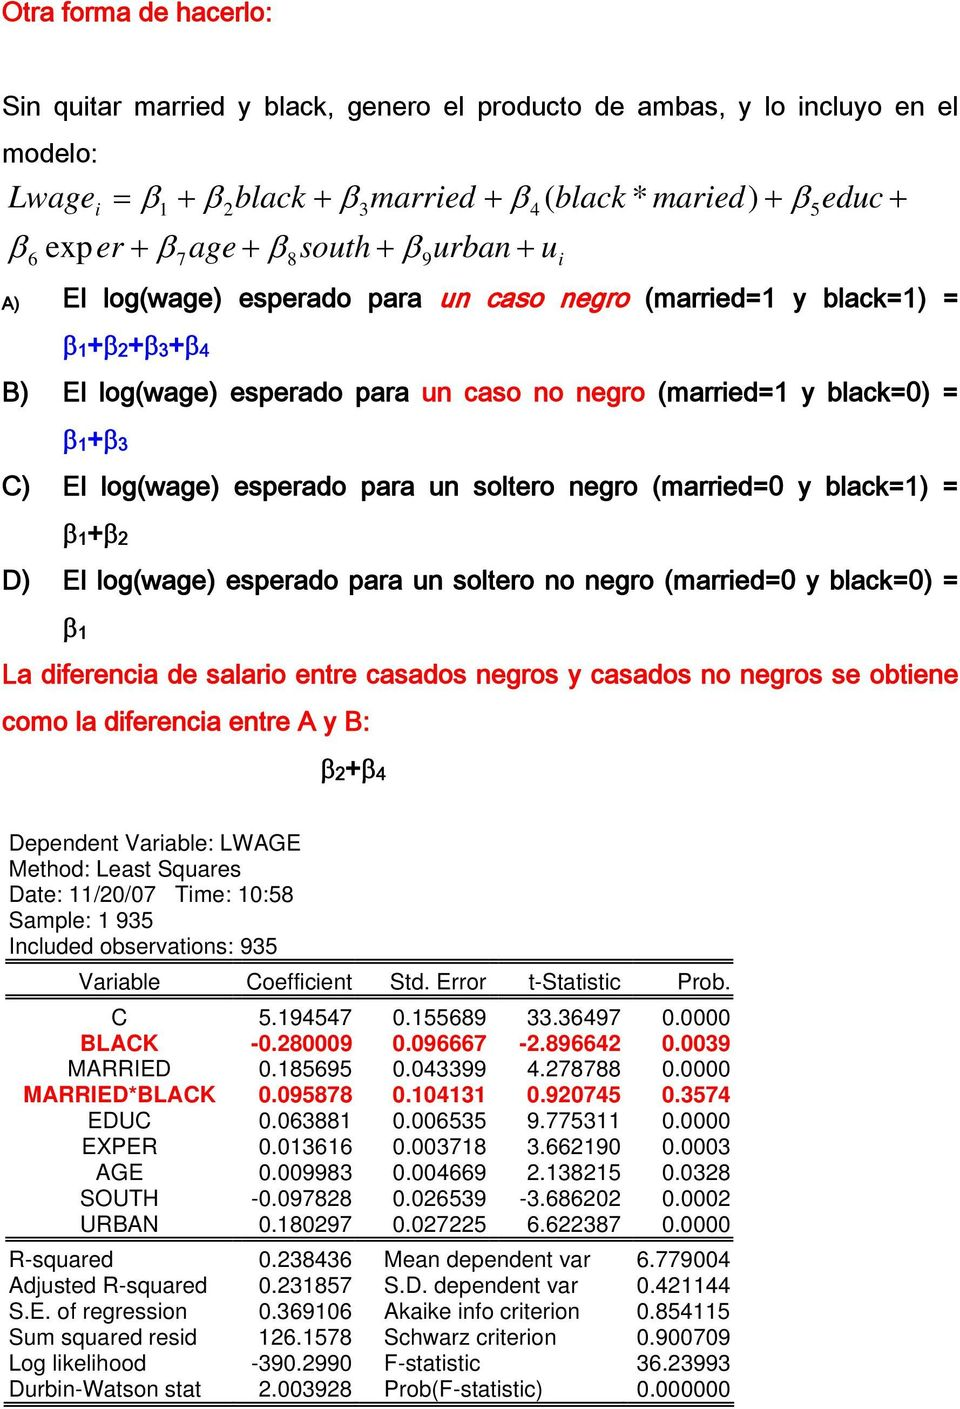 El log(wage) esperado para un soltero negro (married=0 y black=1) = β 1 +β 2 D) El log(wage) esperado para un soltero no negro (married=0 y black=0) = β 1 La diferencia de salario entre casados